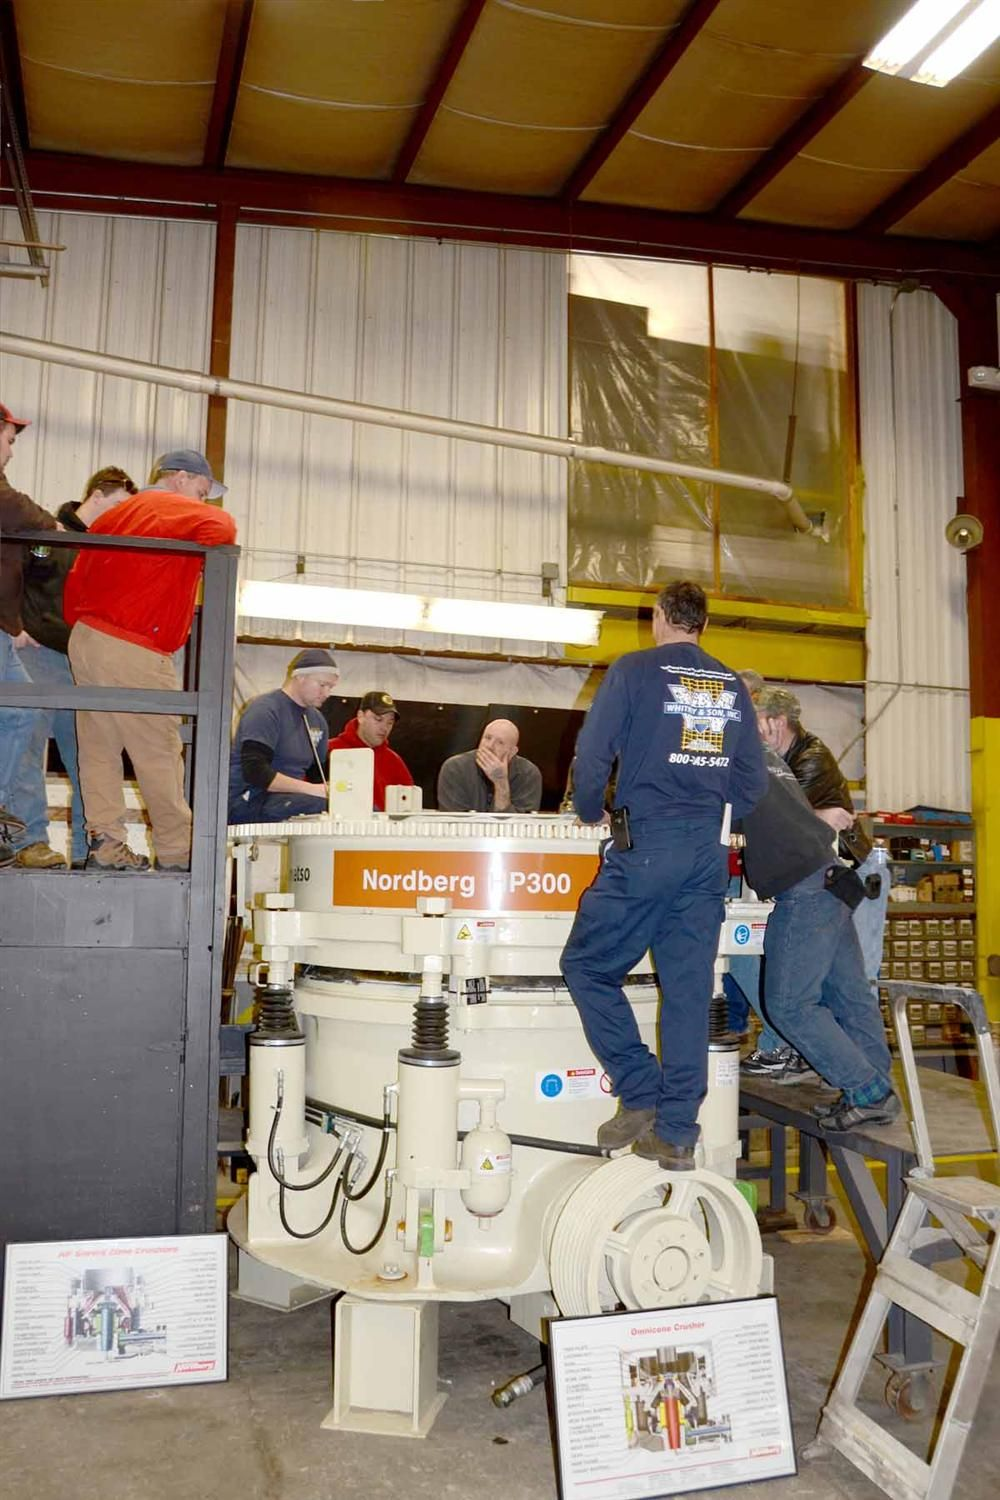 Jamie Zisk and Dave Wentworth hold court from inside an HP300 cone crusher.